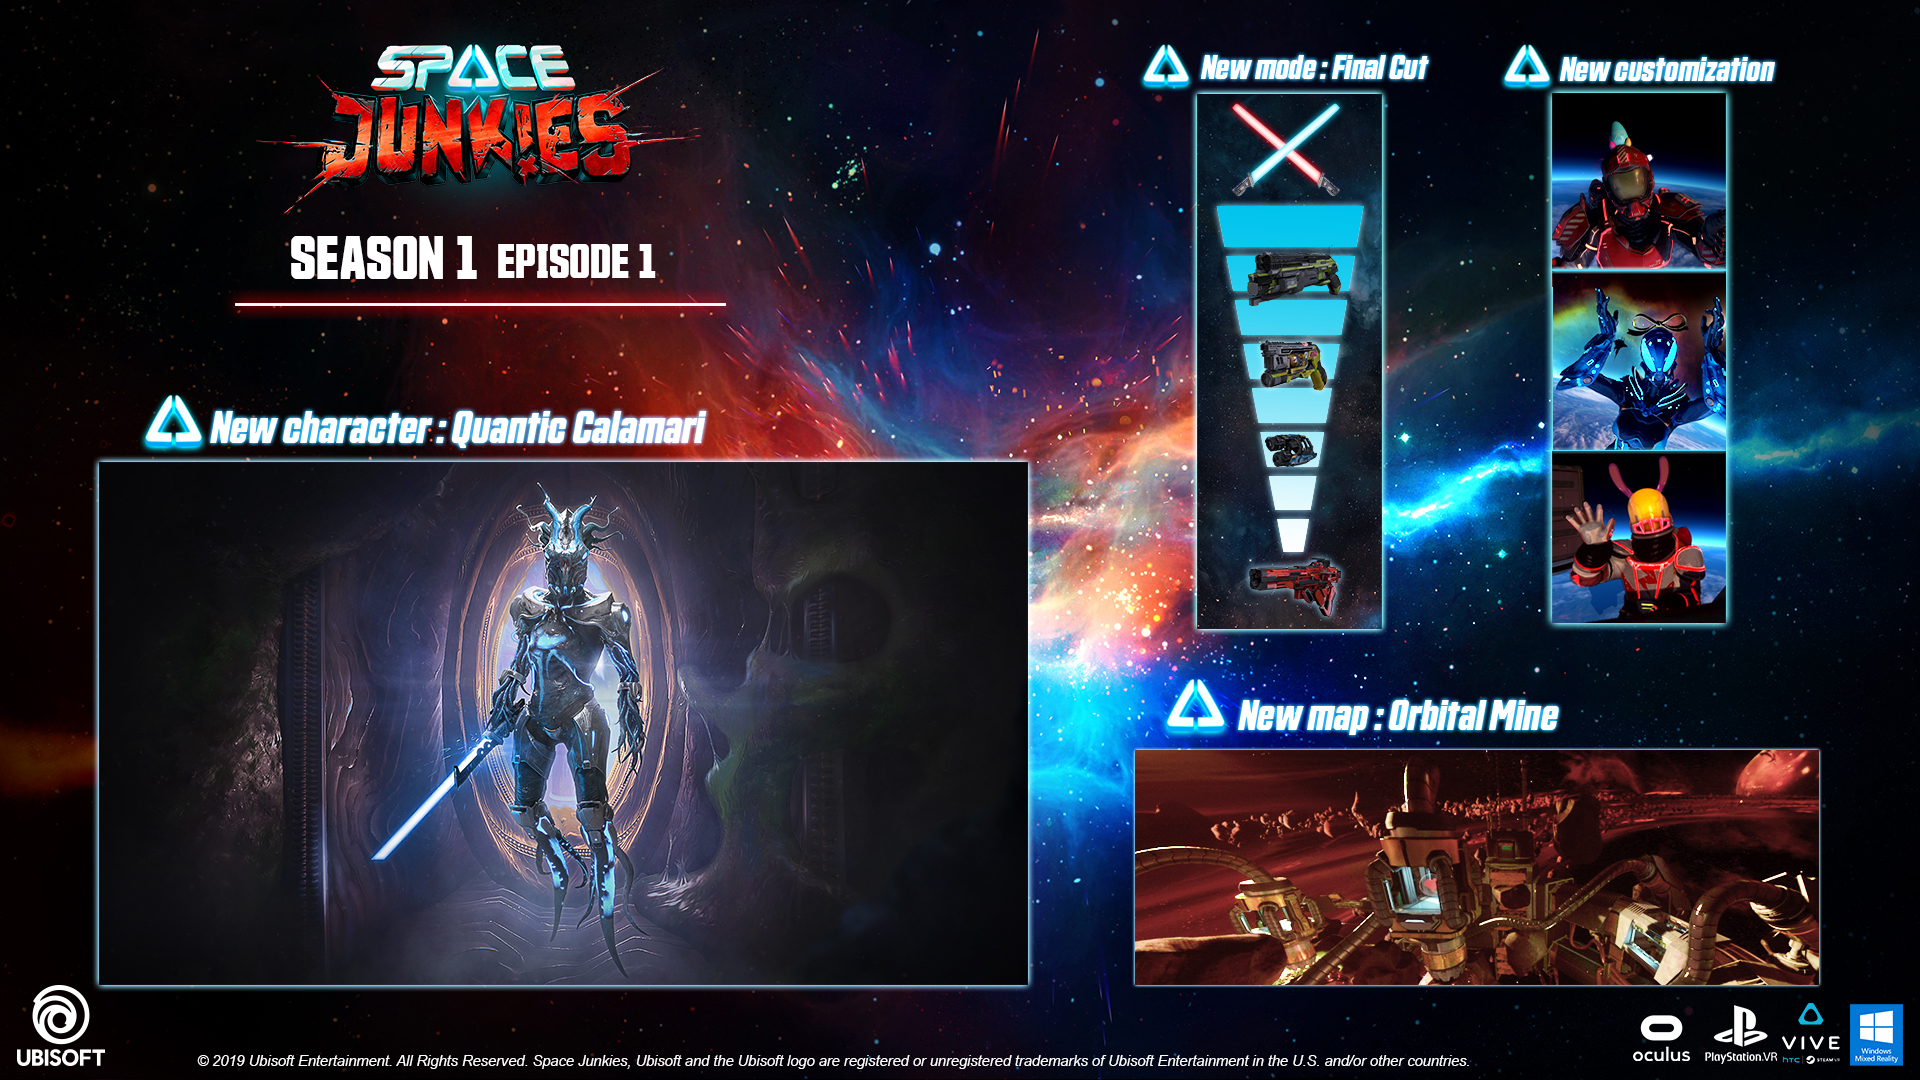 Space Junkies Free Update Introduces New Mode, Map and